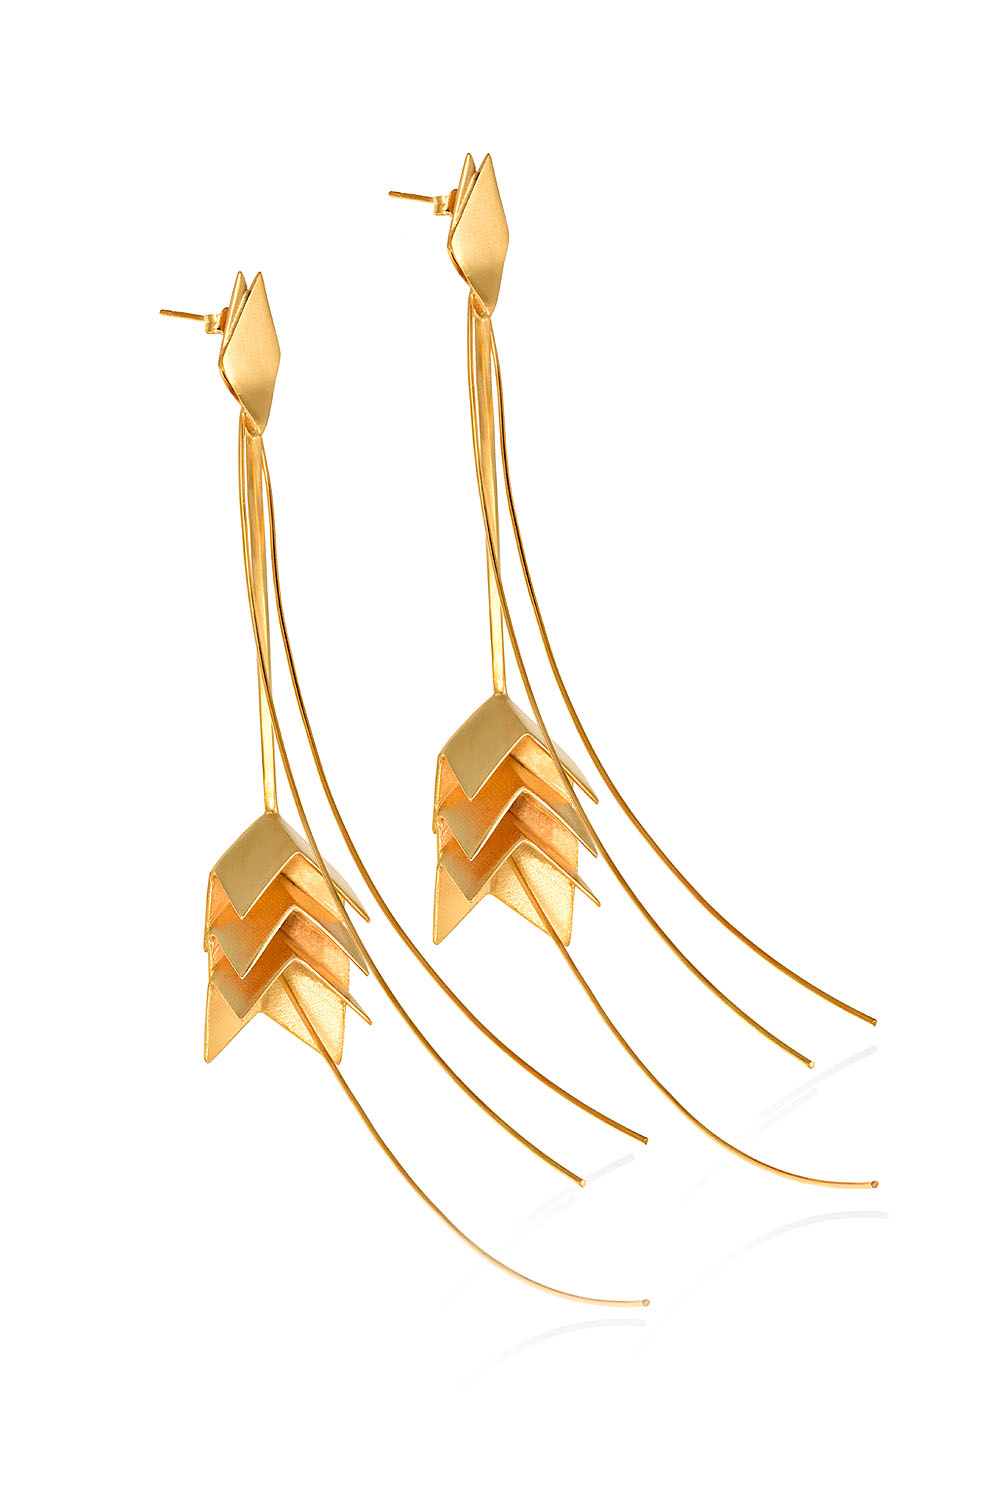 harvest earrings - lefflow jewelry